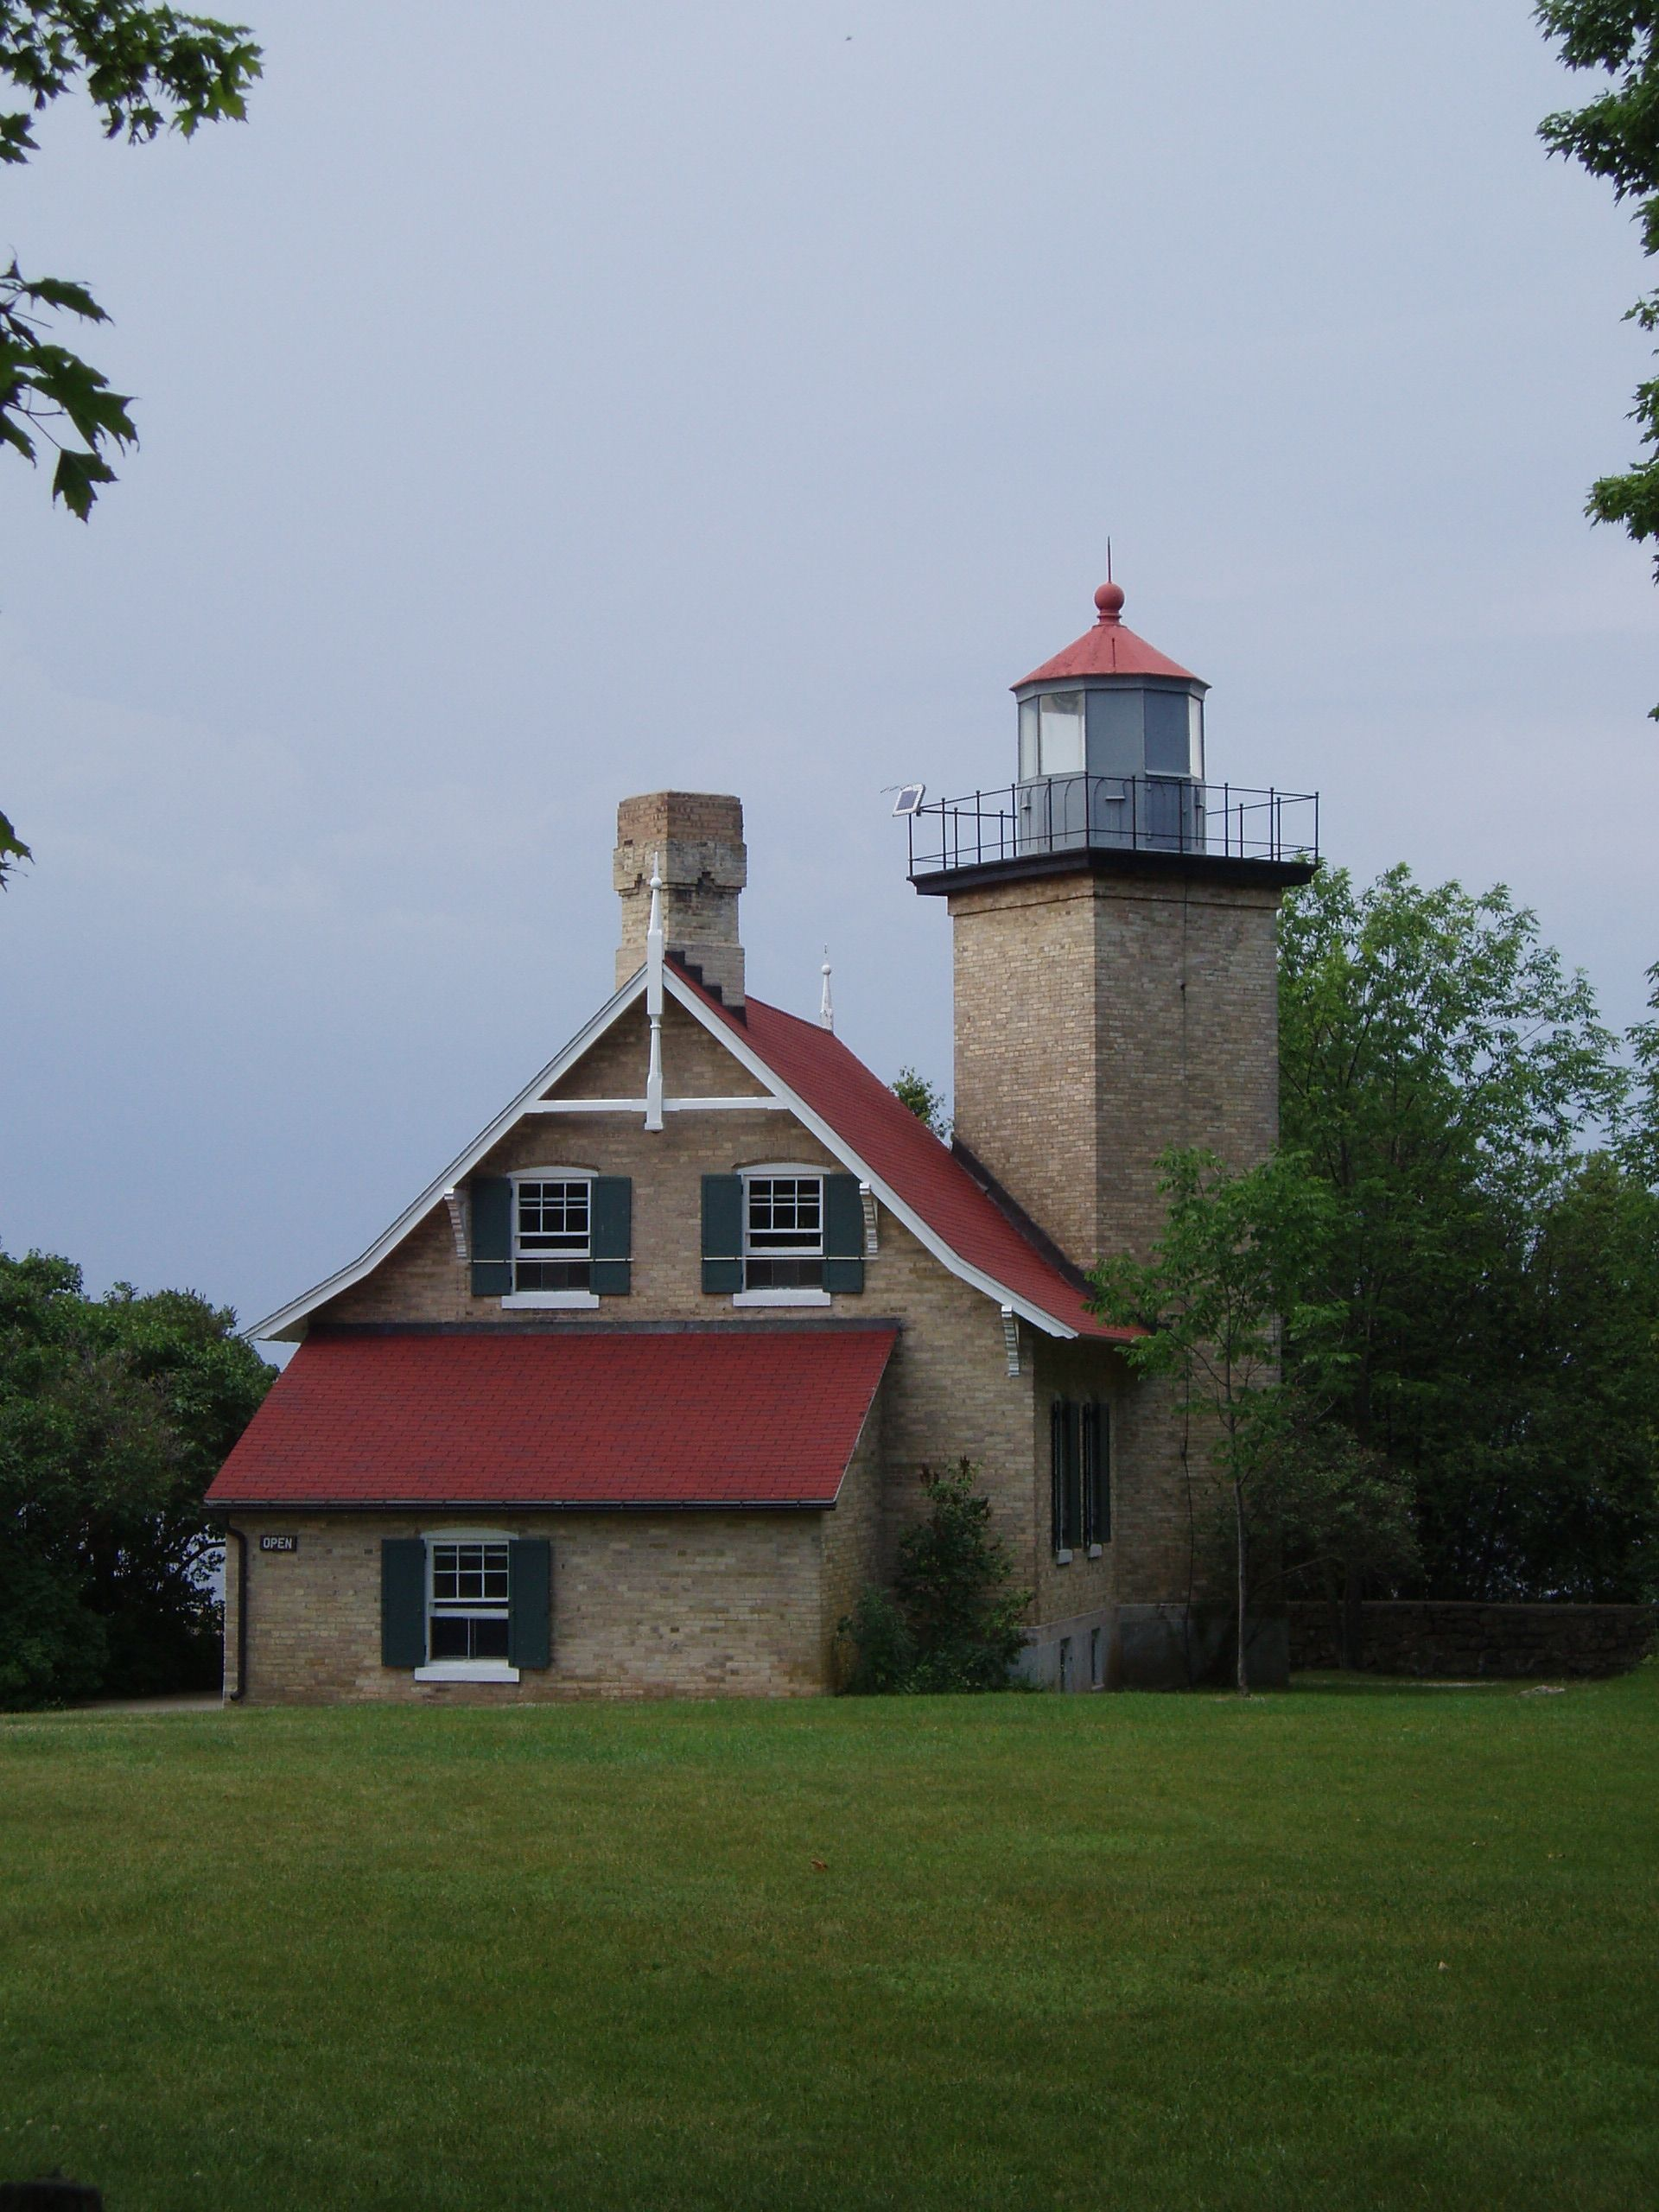 Eagle Bluff Lighthouse Door County Wisconsin Est. 1868 & Eagle Bluff Lighthouse Door County Wisconsin Est. 1868 | Lighthouses ...